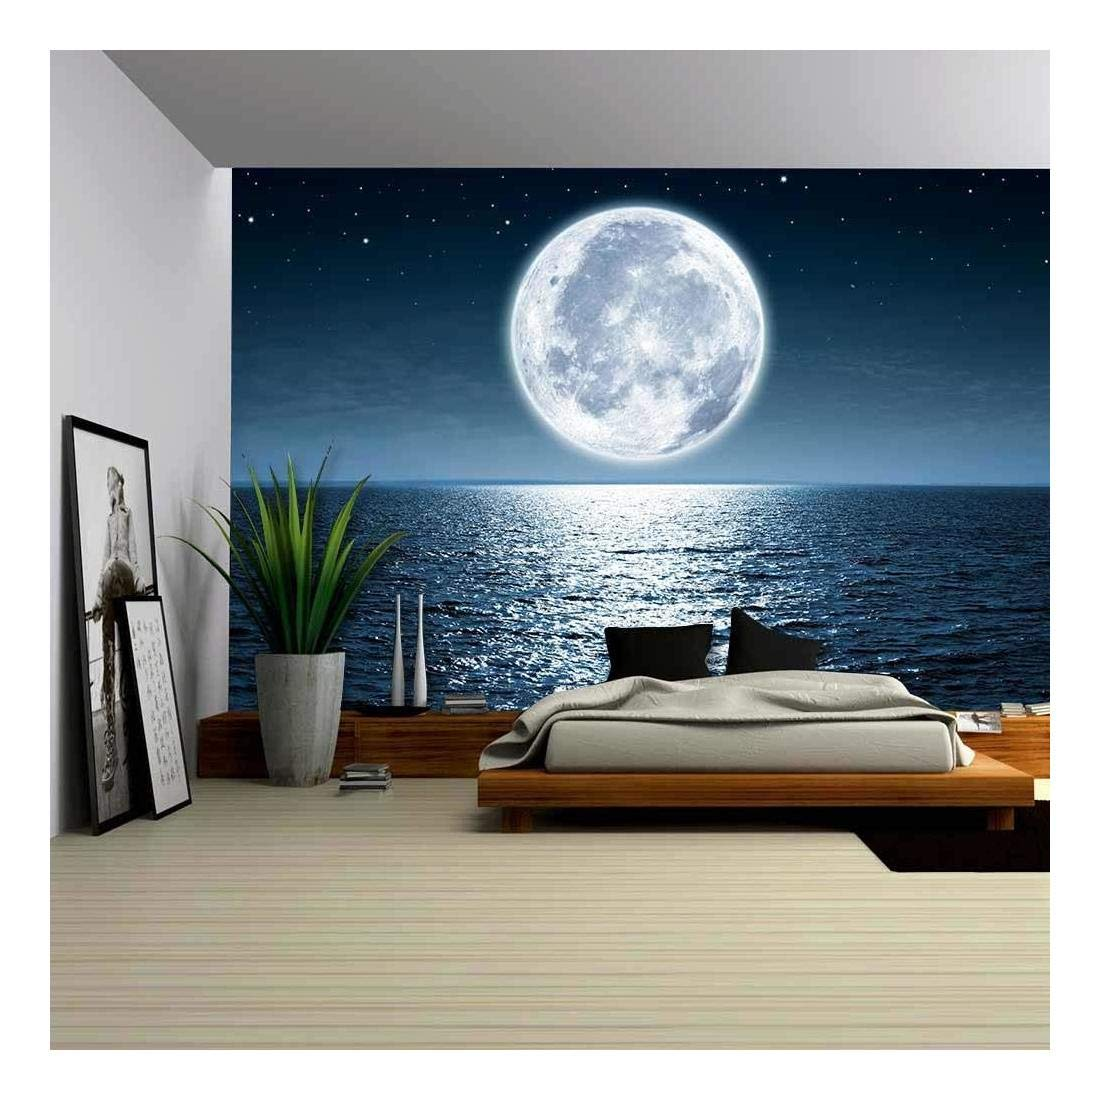 wall26 - Full Moon Rising Over The Ocean Empty at Night with Copy Space - Removable Wall Mural | Self-Adhesive Large Wallpaper - 100x144 inches by wall26 (Image #1)